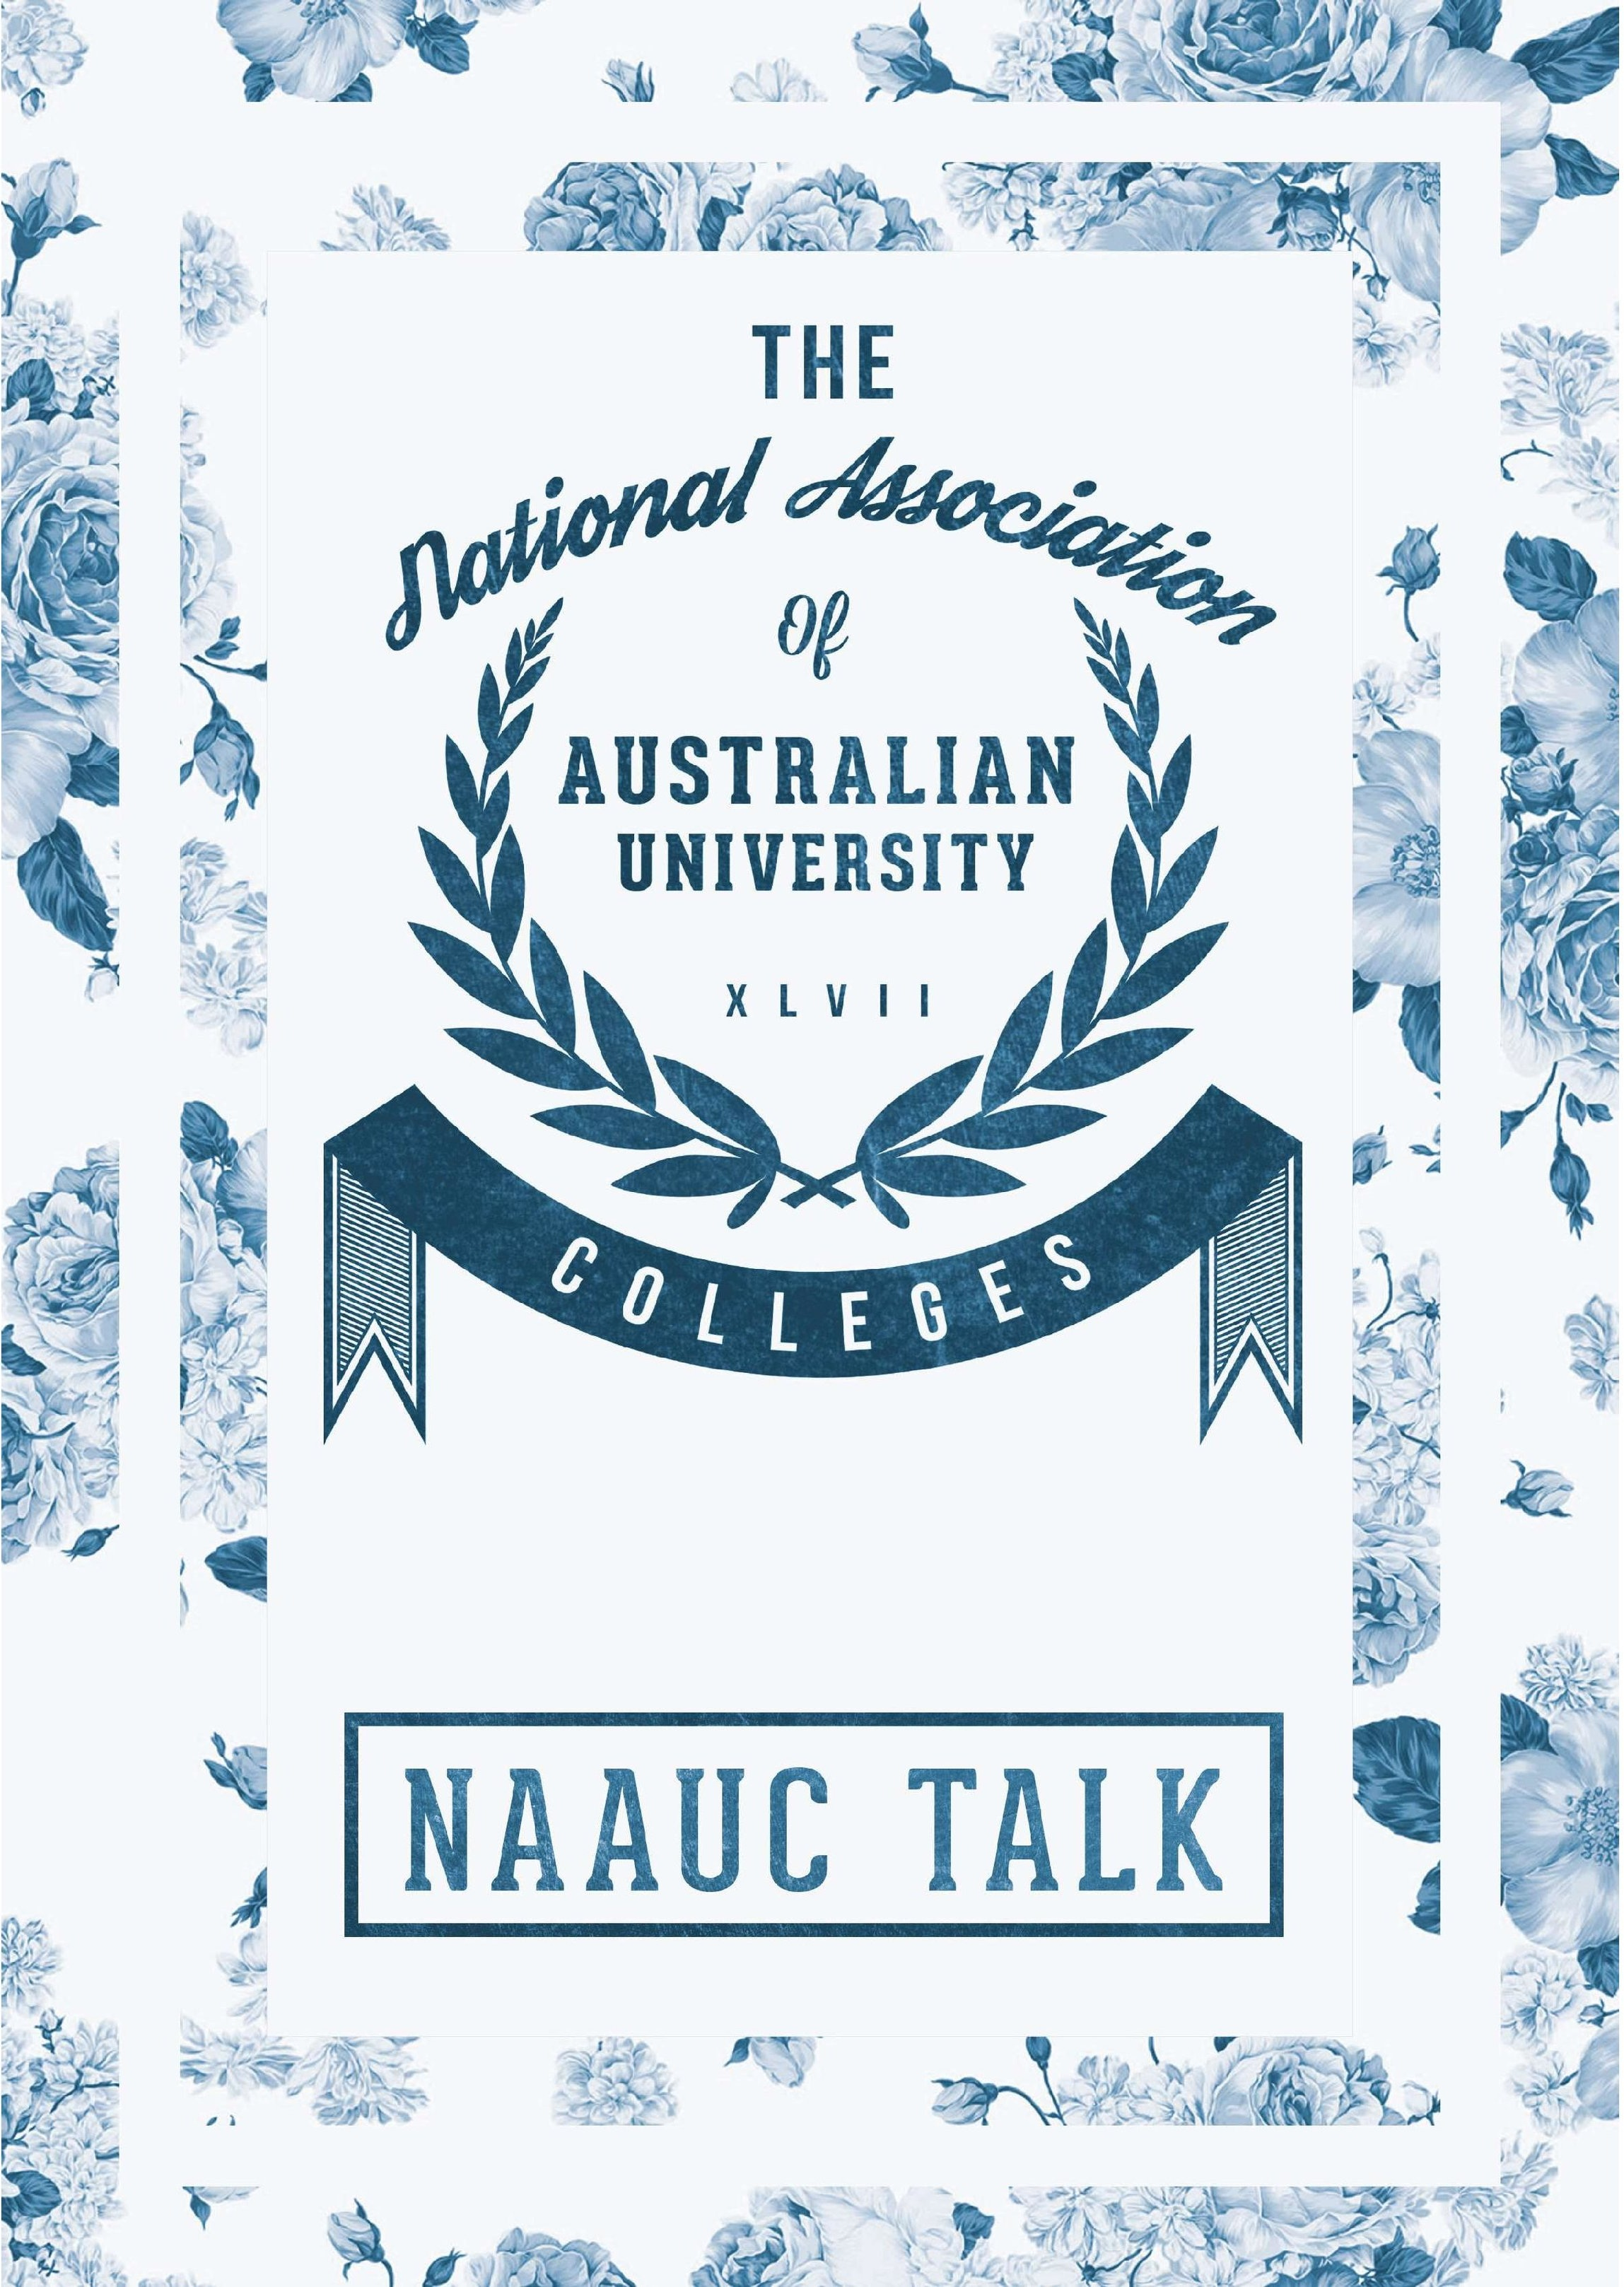 NAAUC talk March 2015-page-001.jpg